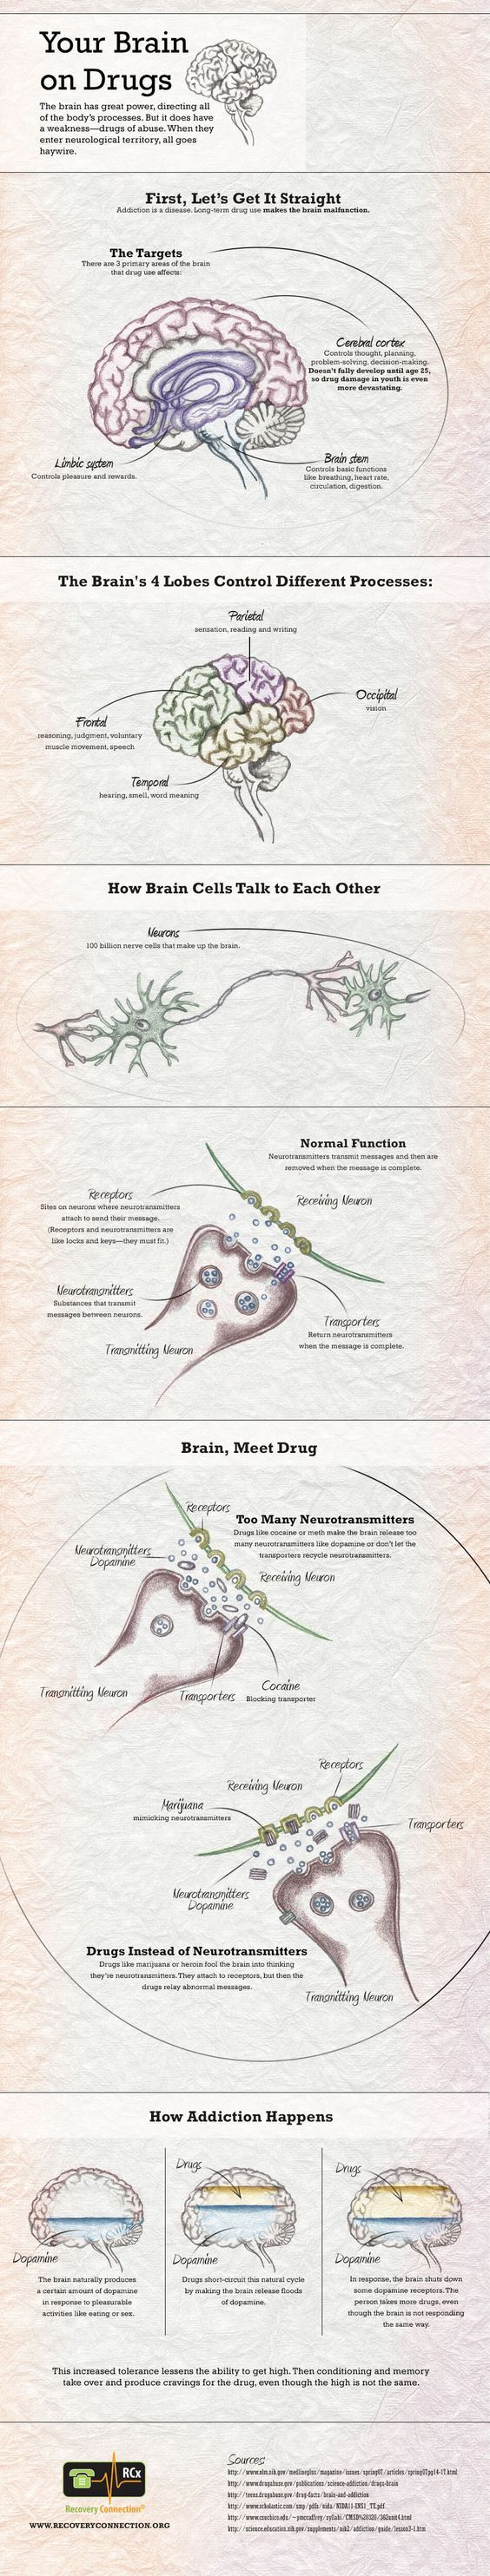 Want to know exactly what happens to the brain on drugs? Check out our INFOGRAPHIC which visually explains effects of drugs on the brain.